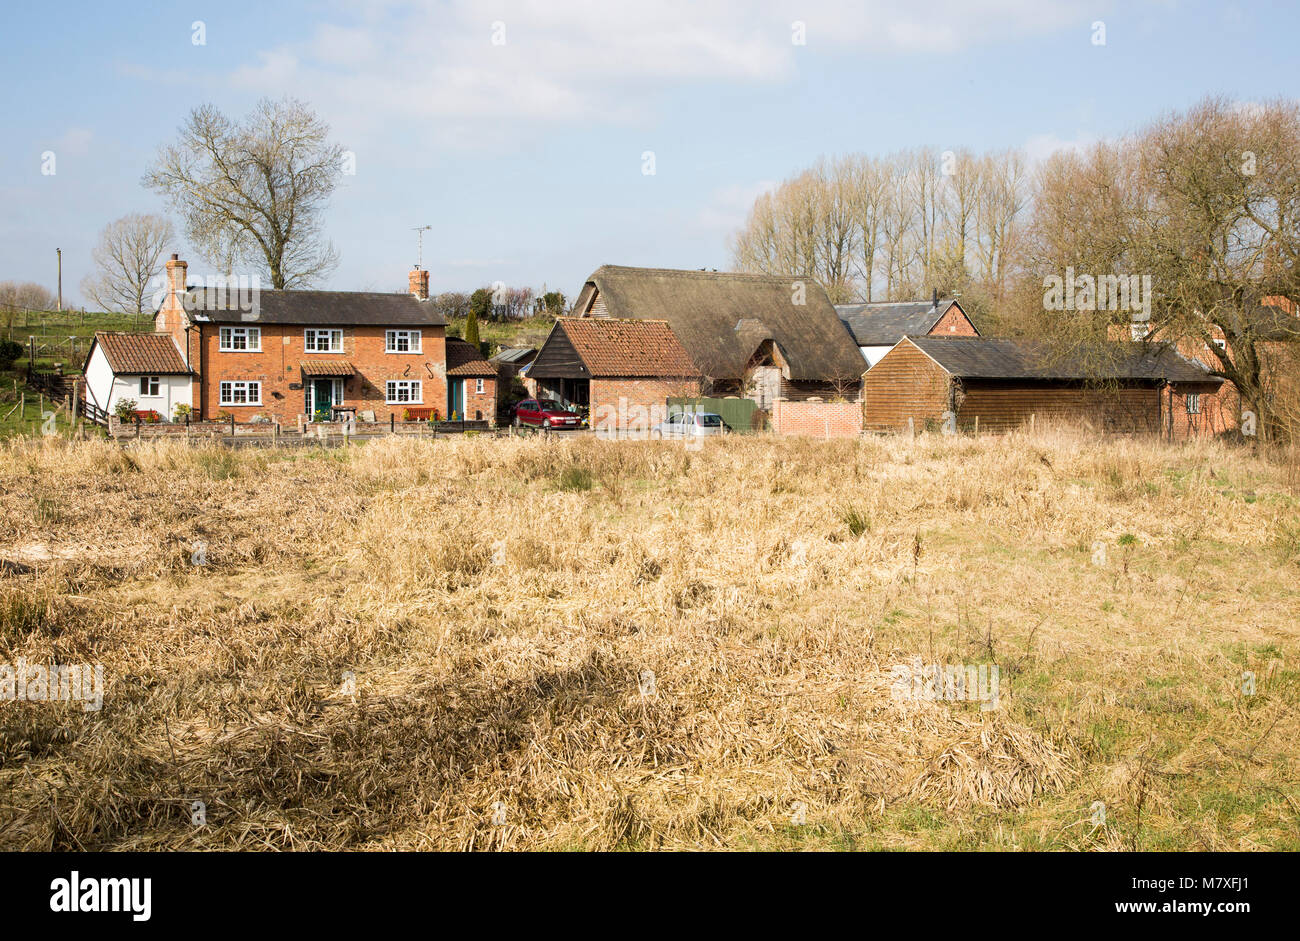 Pretty cottage and farm buildings, Marden village, Wiltshire, England, UK - Stock Image